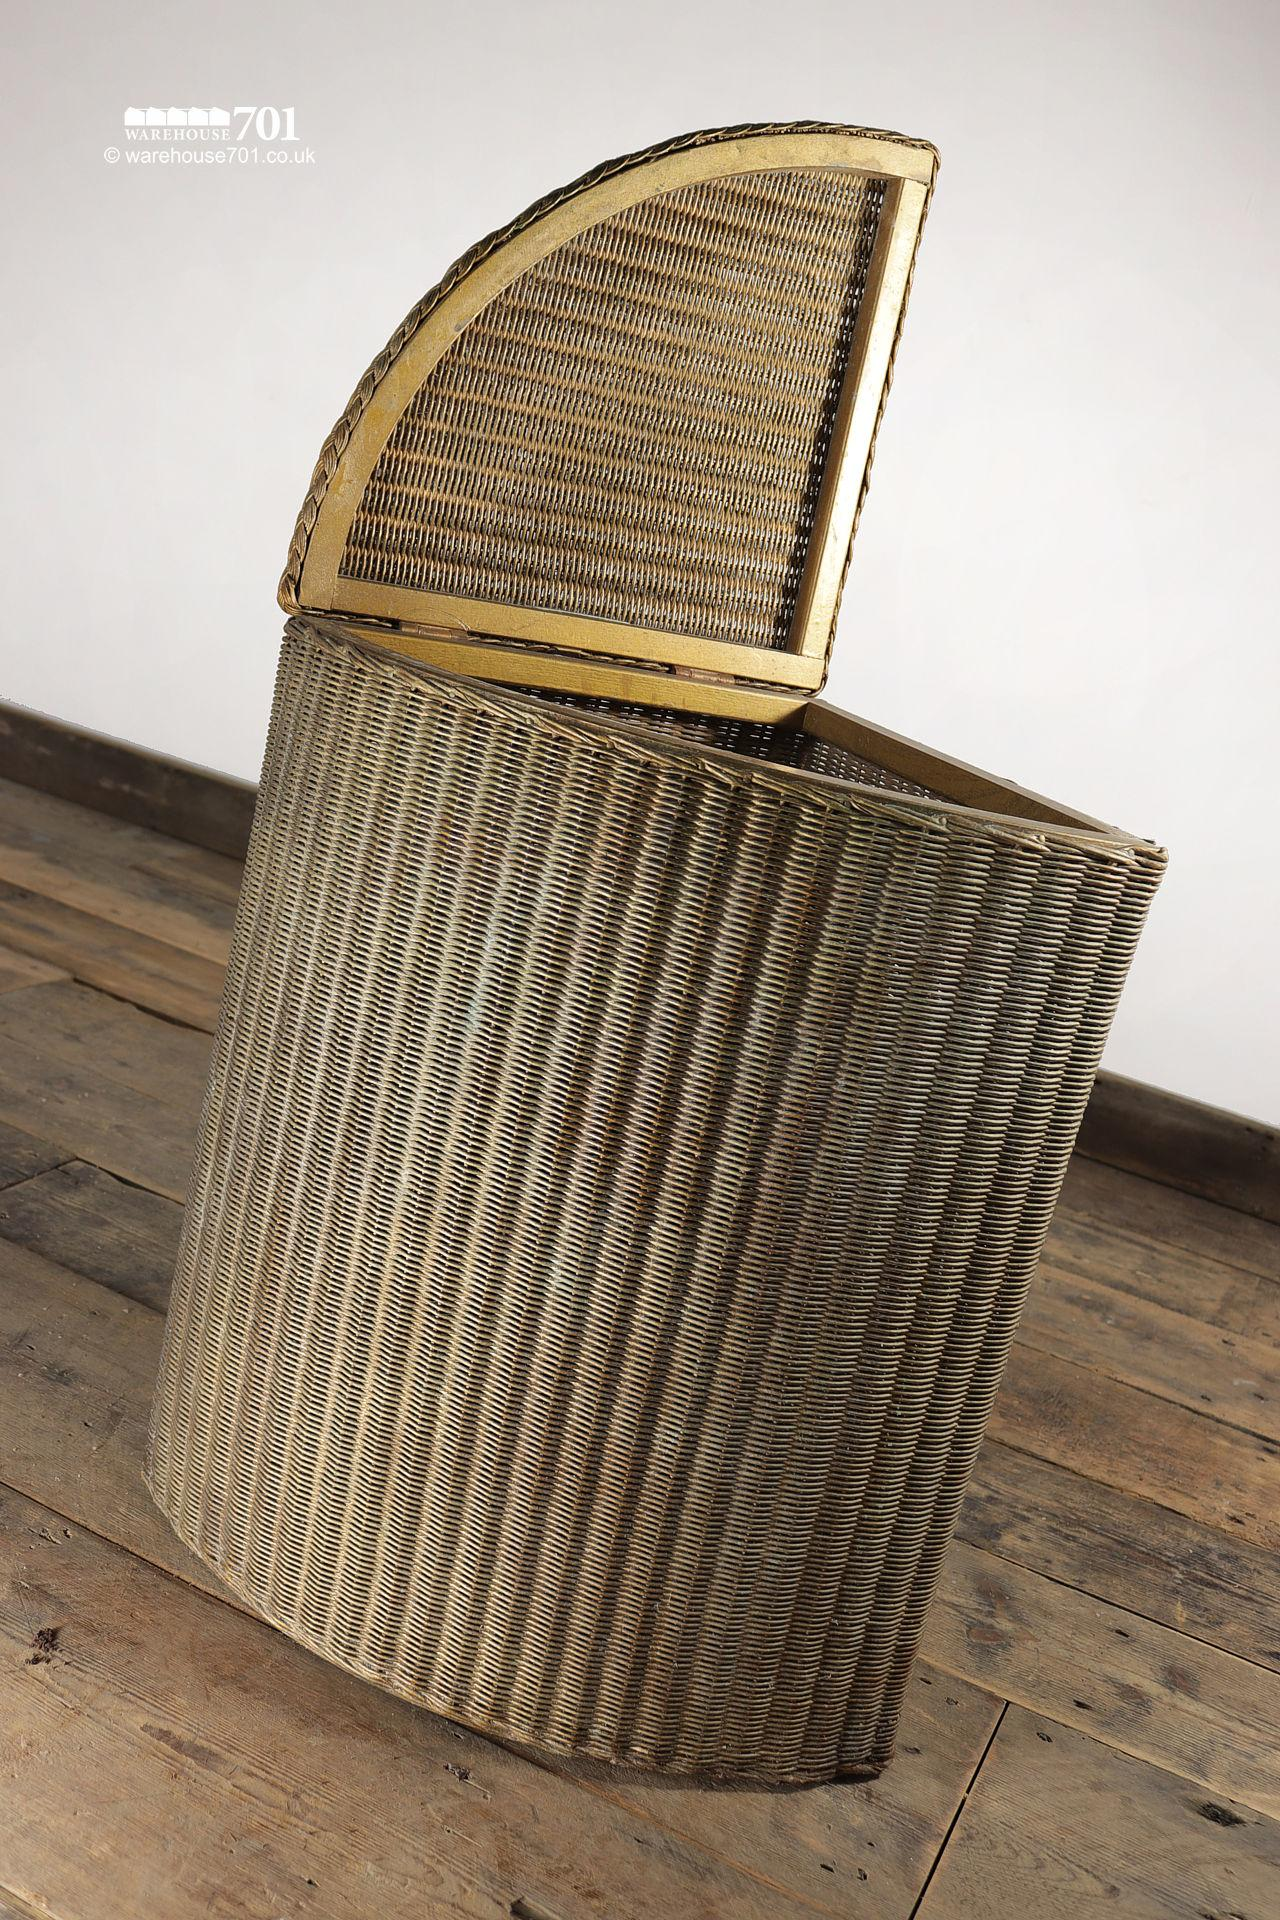 Authentic Period Gold Lloyd Loom Quadrant Laundry Basket #4